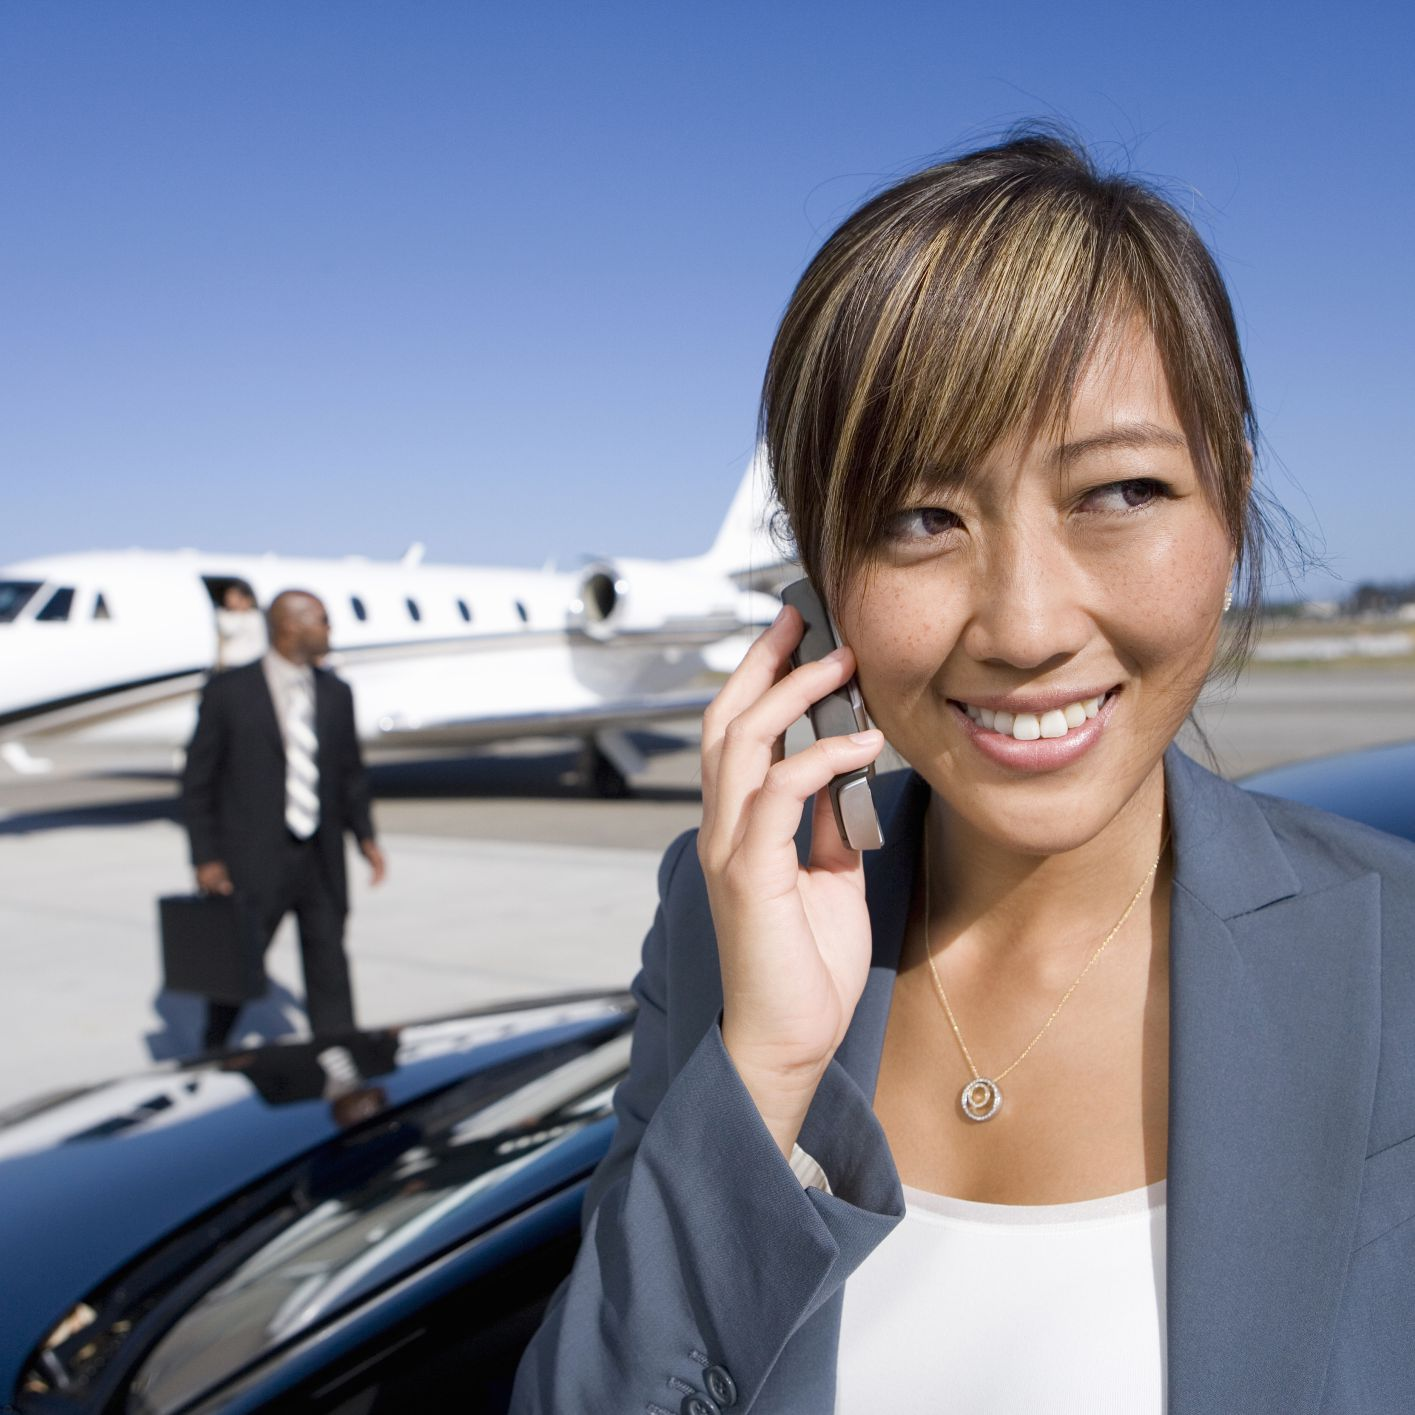 Make Smart Travel Decisions With These Top Tips